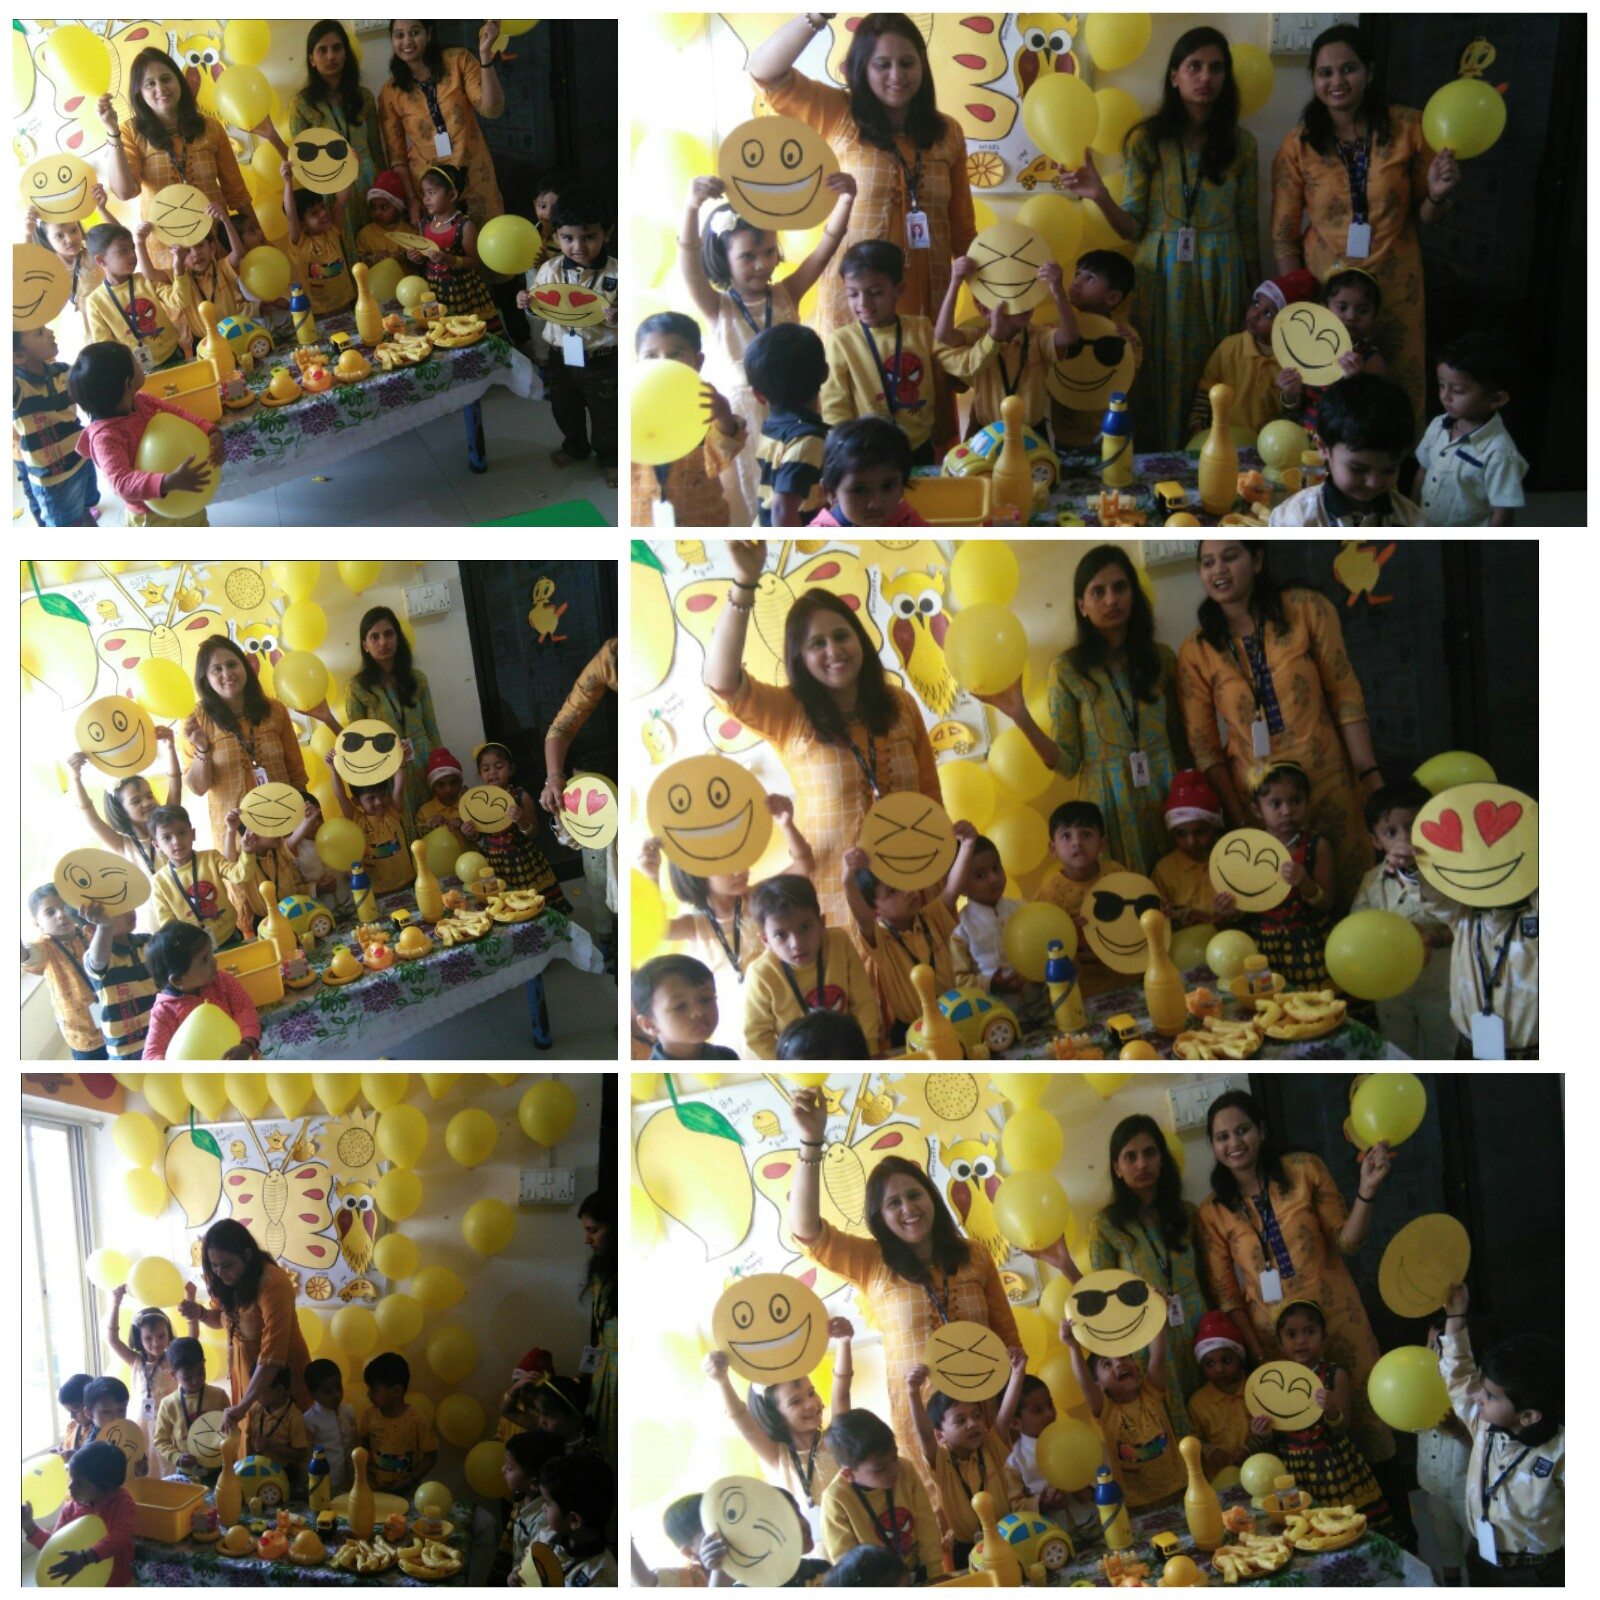 yellowcolorday